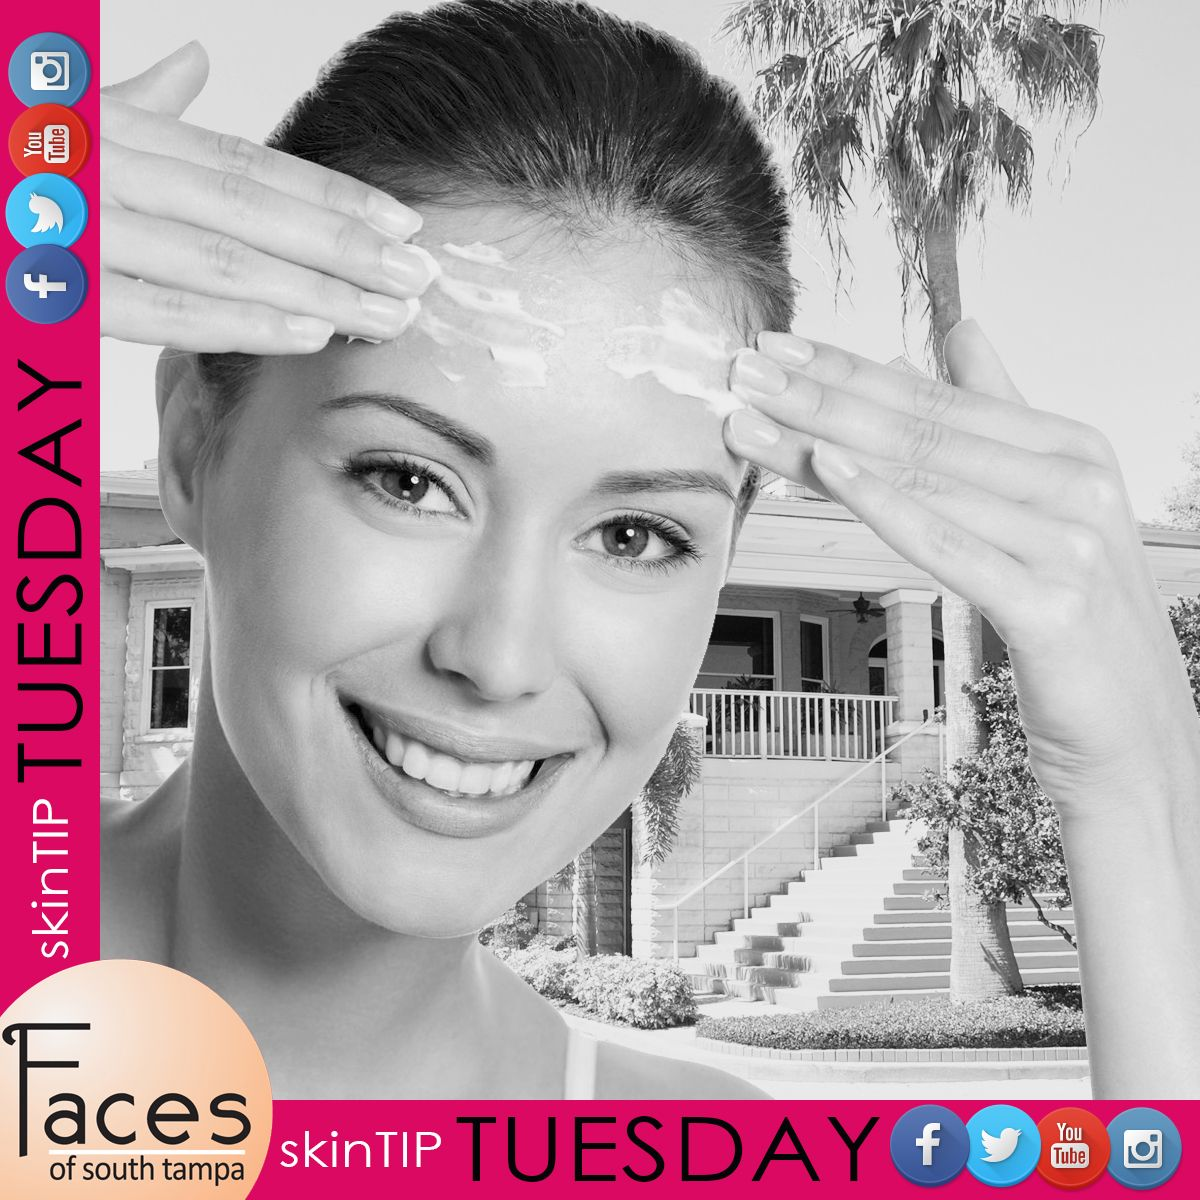 Pin on Skin Tip Tuesdays from Faces of South Tampa